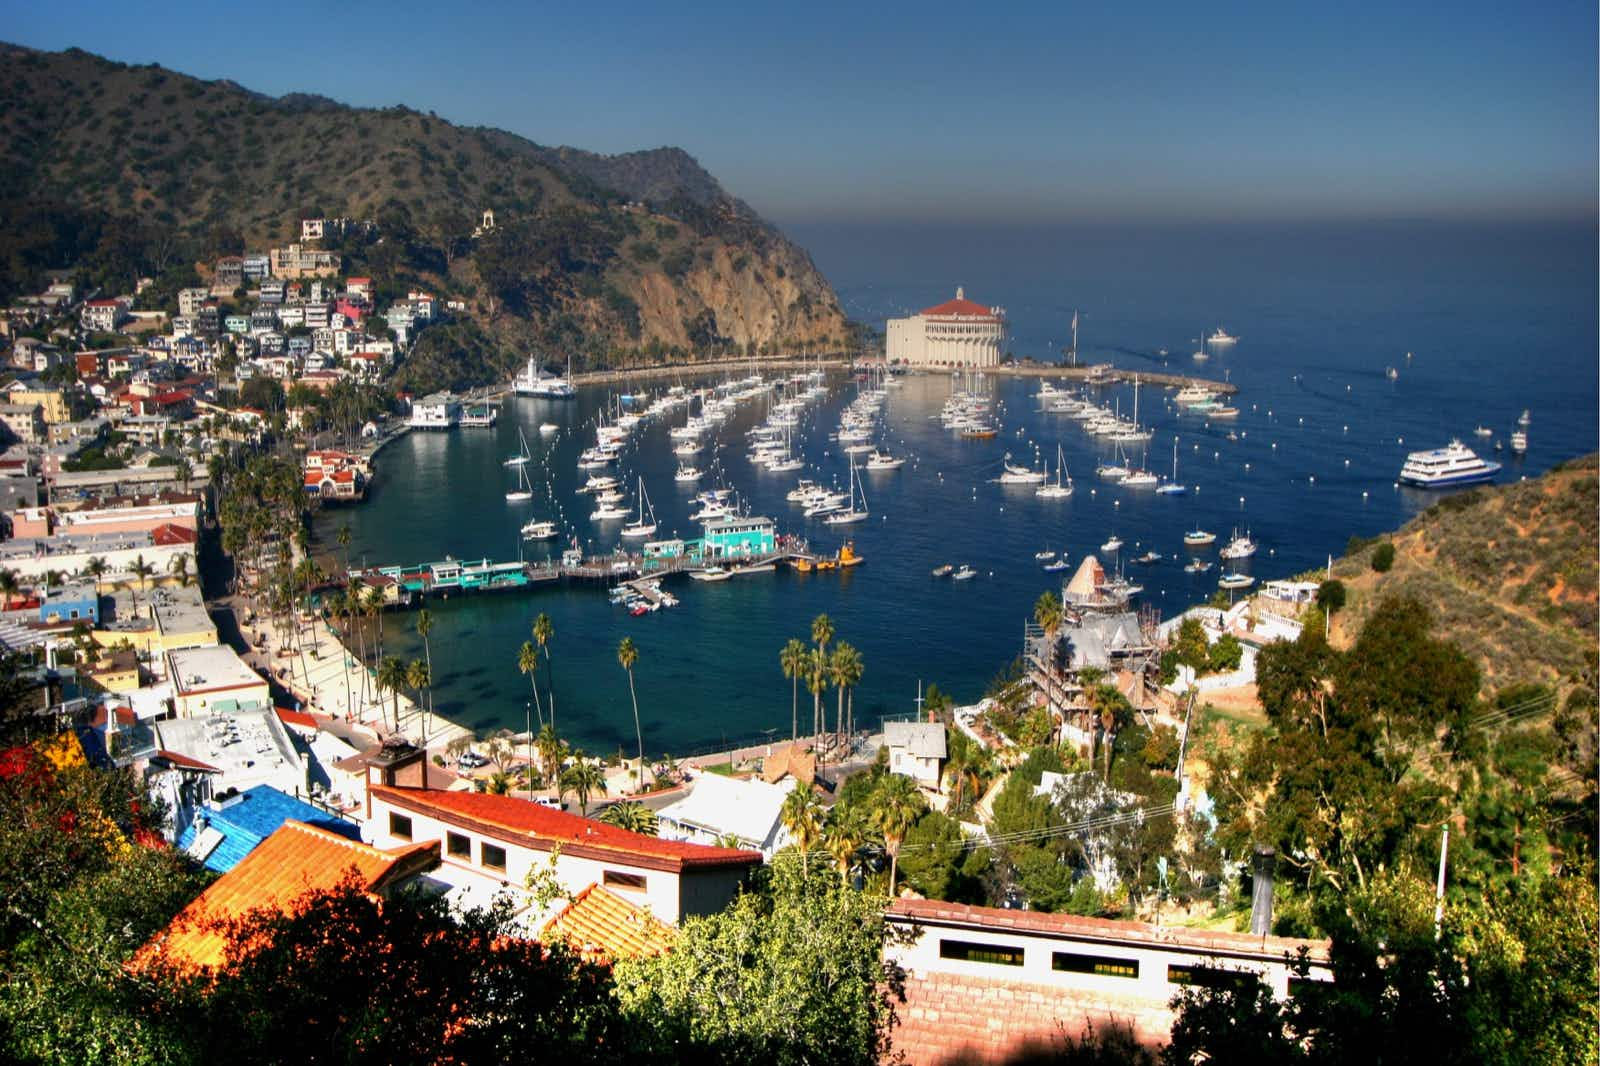 The harbor at Avalon Village is a charming jumping-off-point for a Catalina adventure © Tan Yilmaz / Getty Images